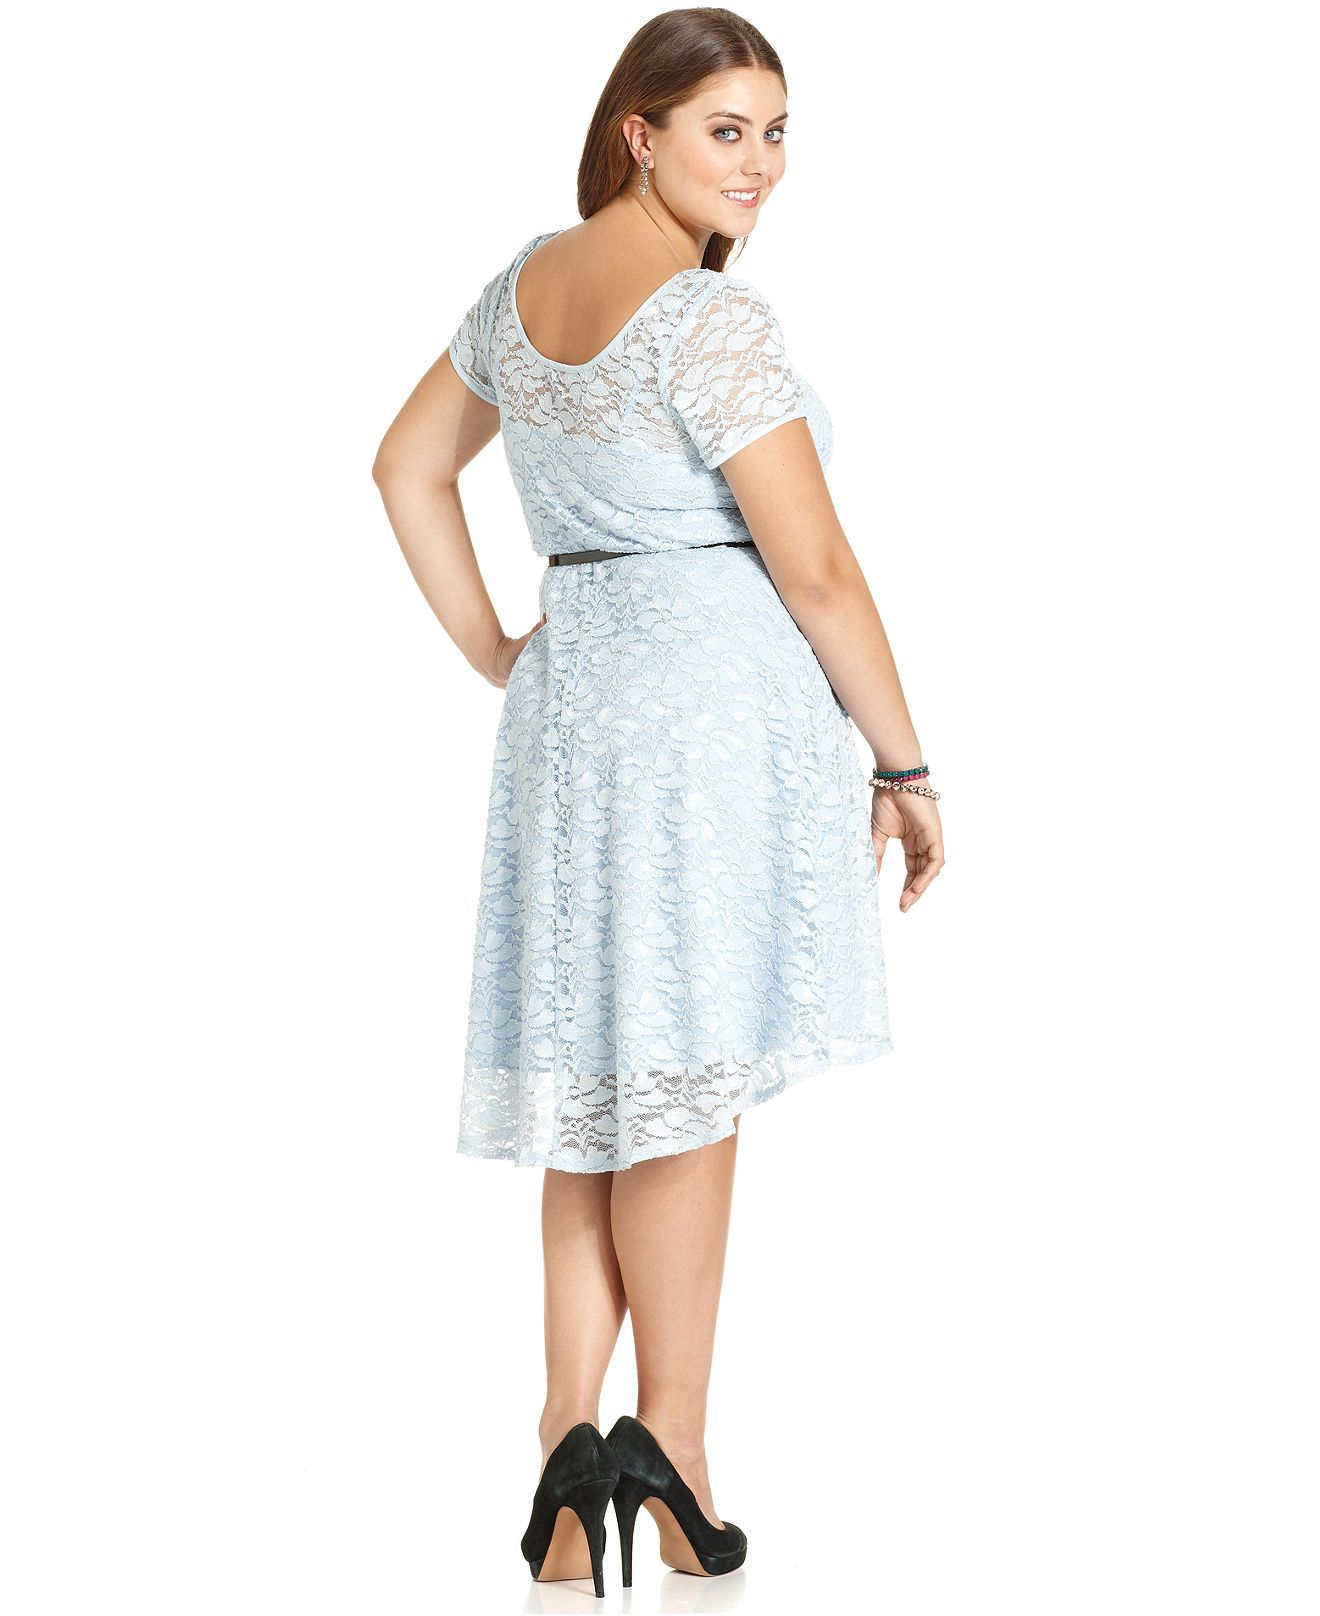 Ruby Rox Plus Size Dress, Short-Sleeve Lace Belted